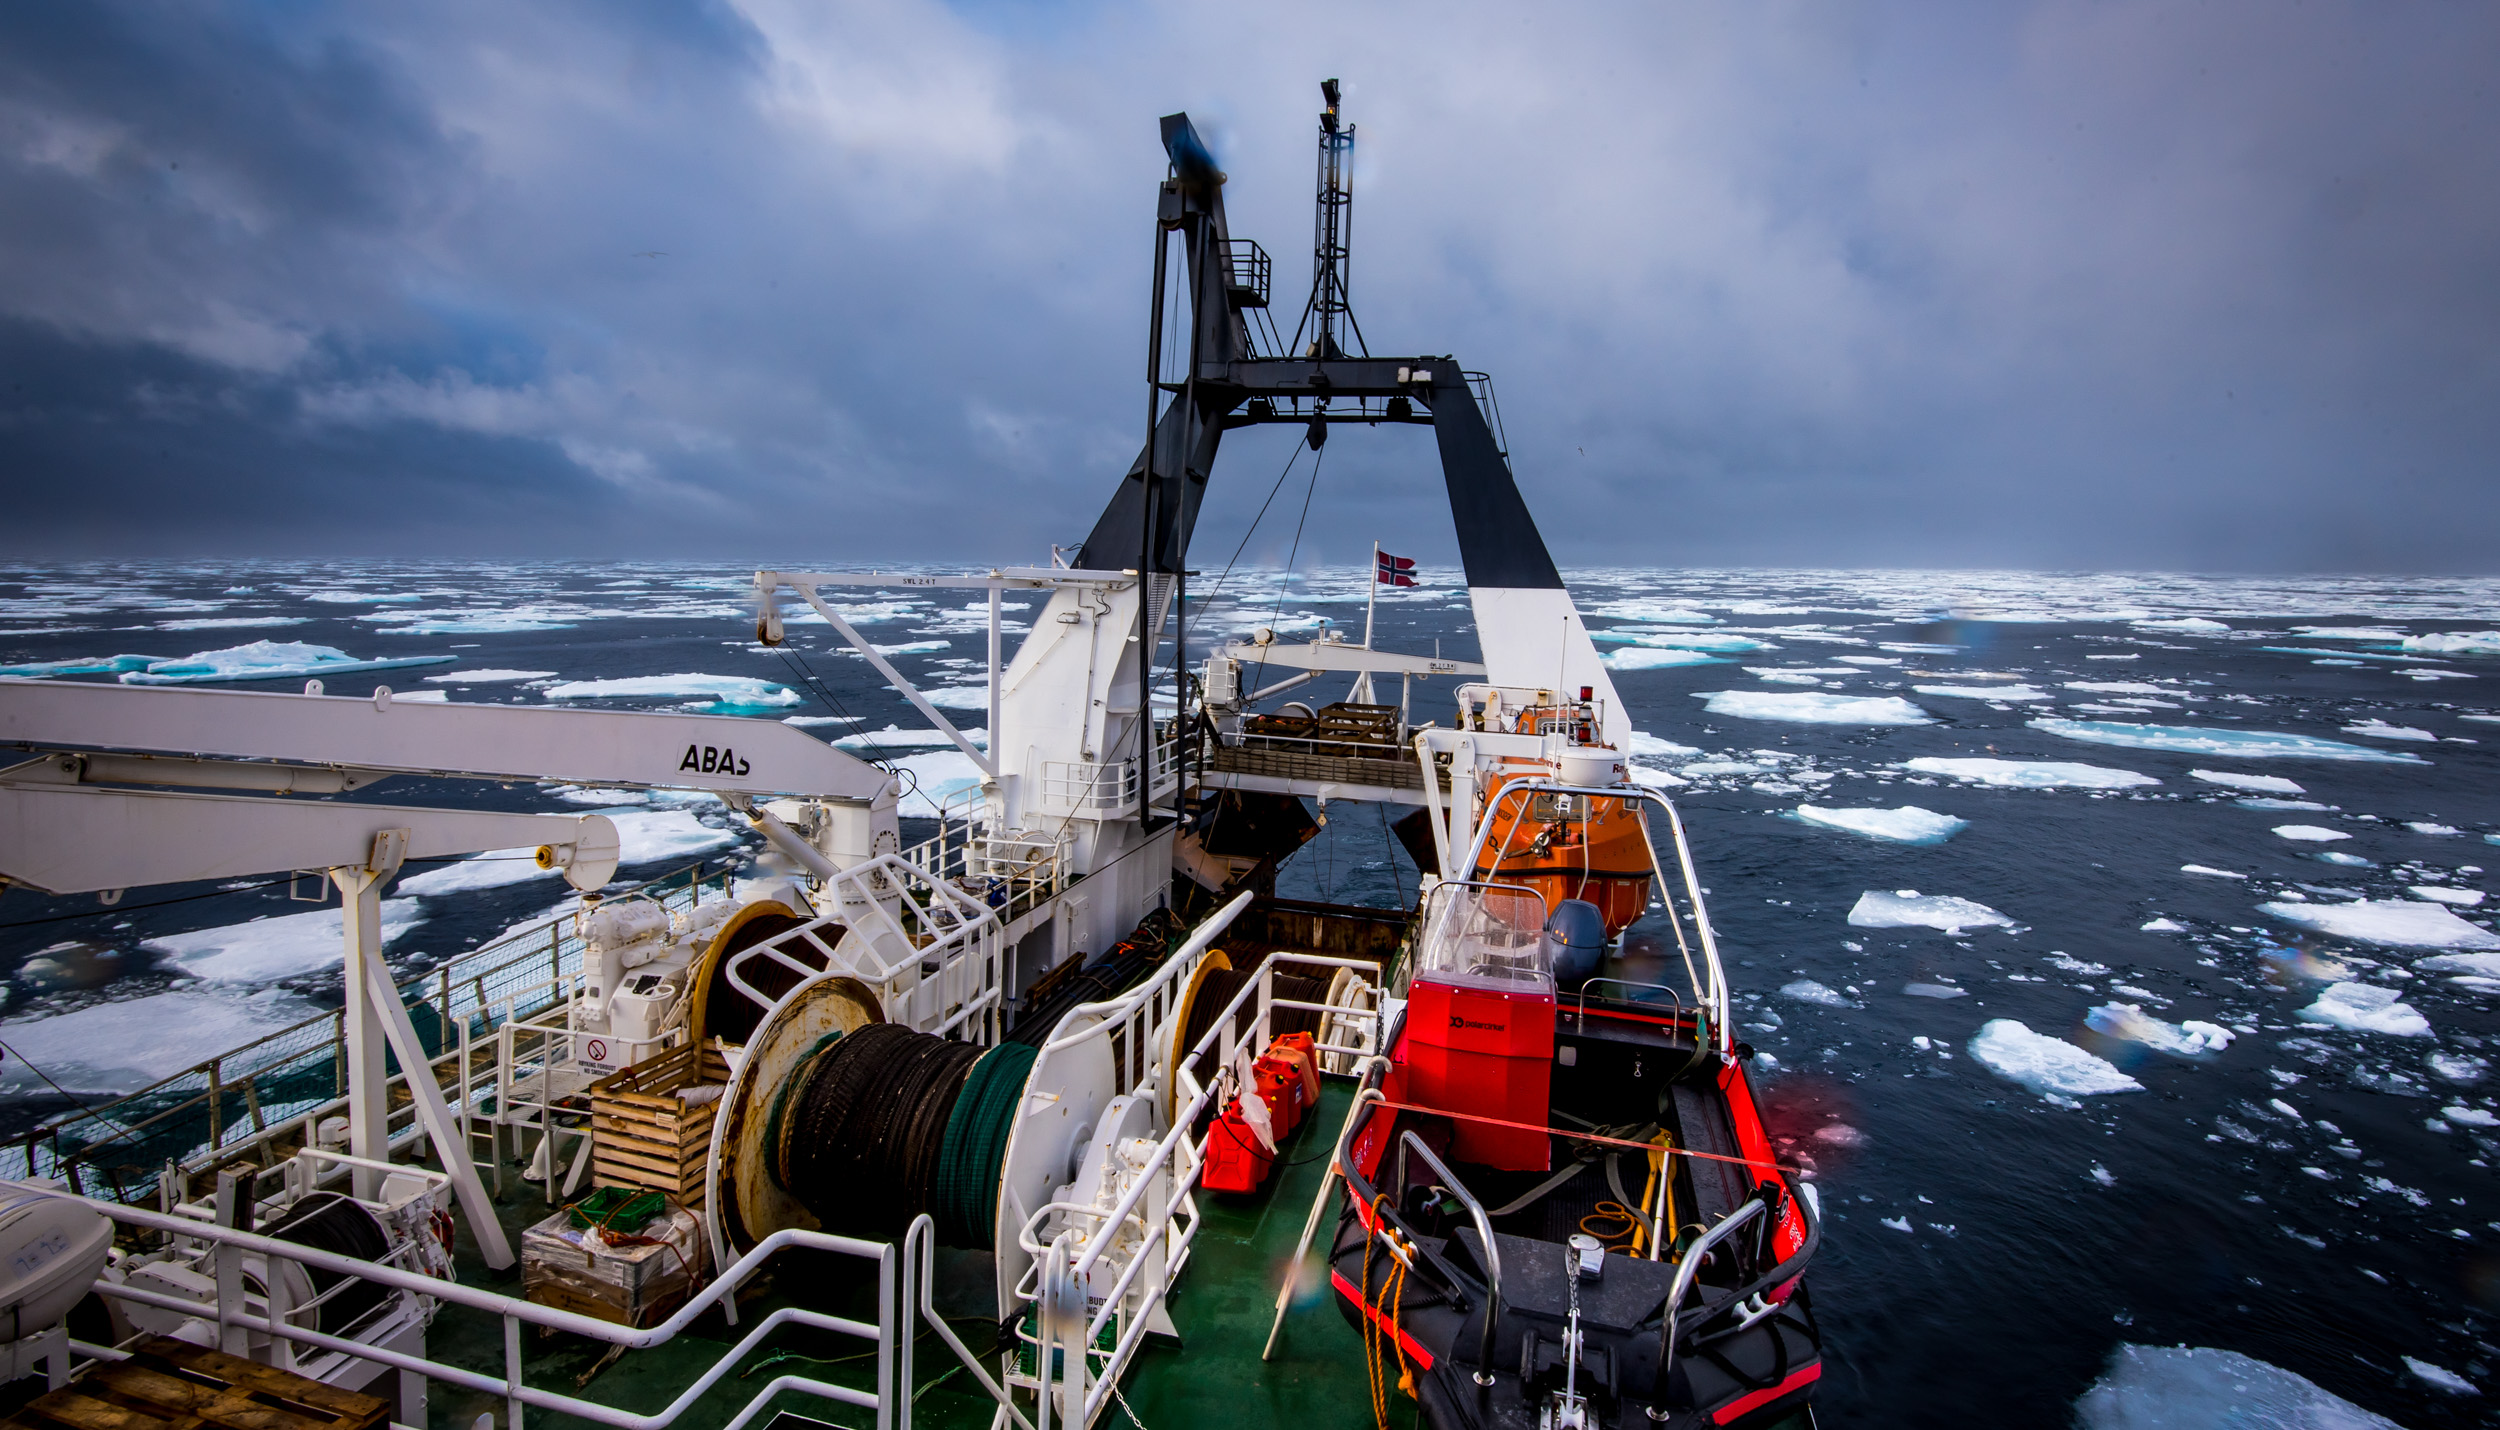 """Scientific research vessel """"Helmer Hanssen""""  in the Arctic Ocean. Warm seas produce less sea ice north of Svalbard, bringing about changes to the marine environment.  JONAA©Elvar H. Hallfredsson"""